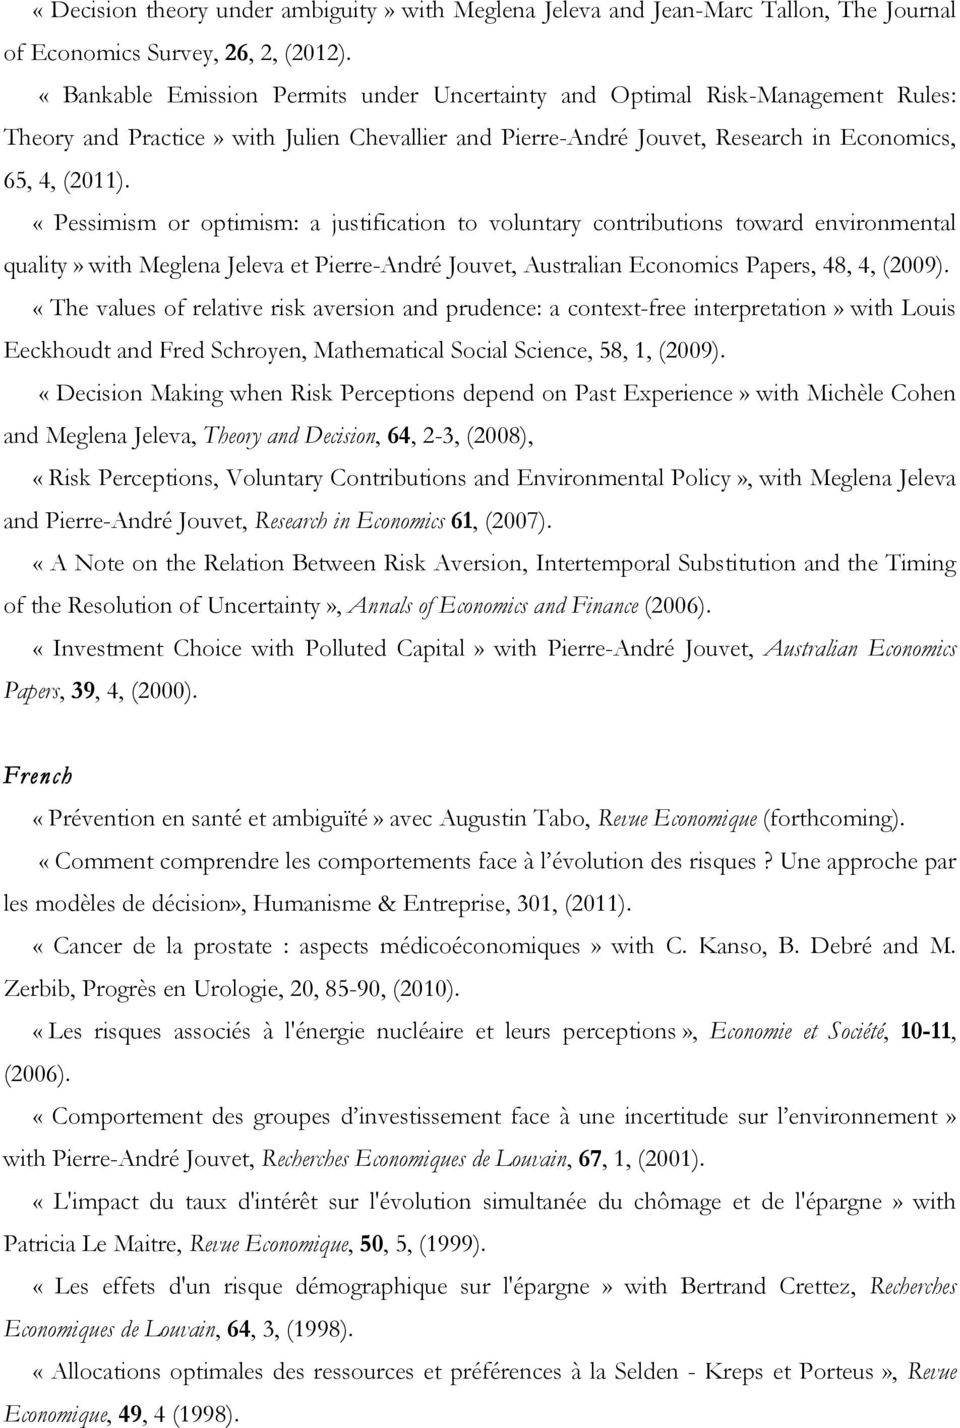 «Pessimism or optimism: a justification to voluntary contributions toward environmental quality» with Meglena Jeleva et Pierre-André Jouvet, Australian Economics Papers, 48, 4, (2009).